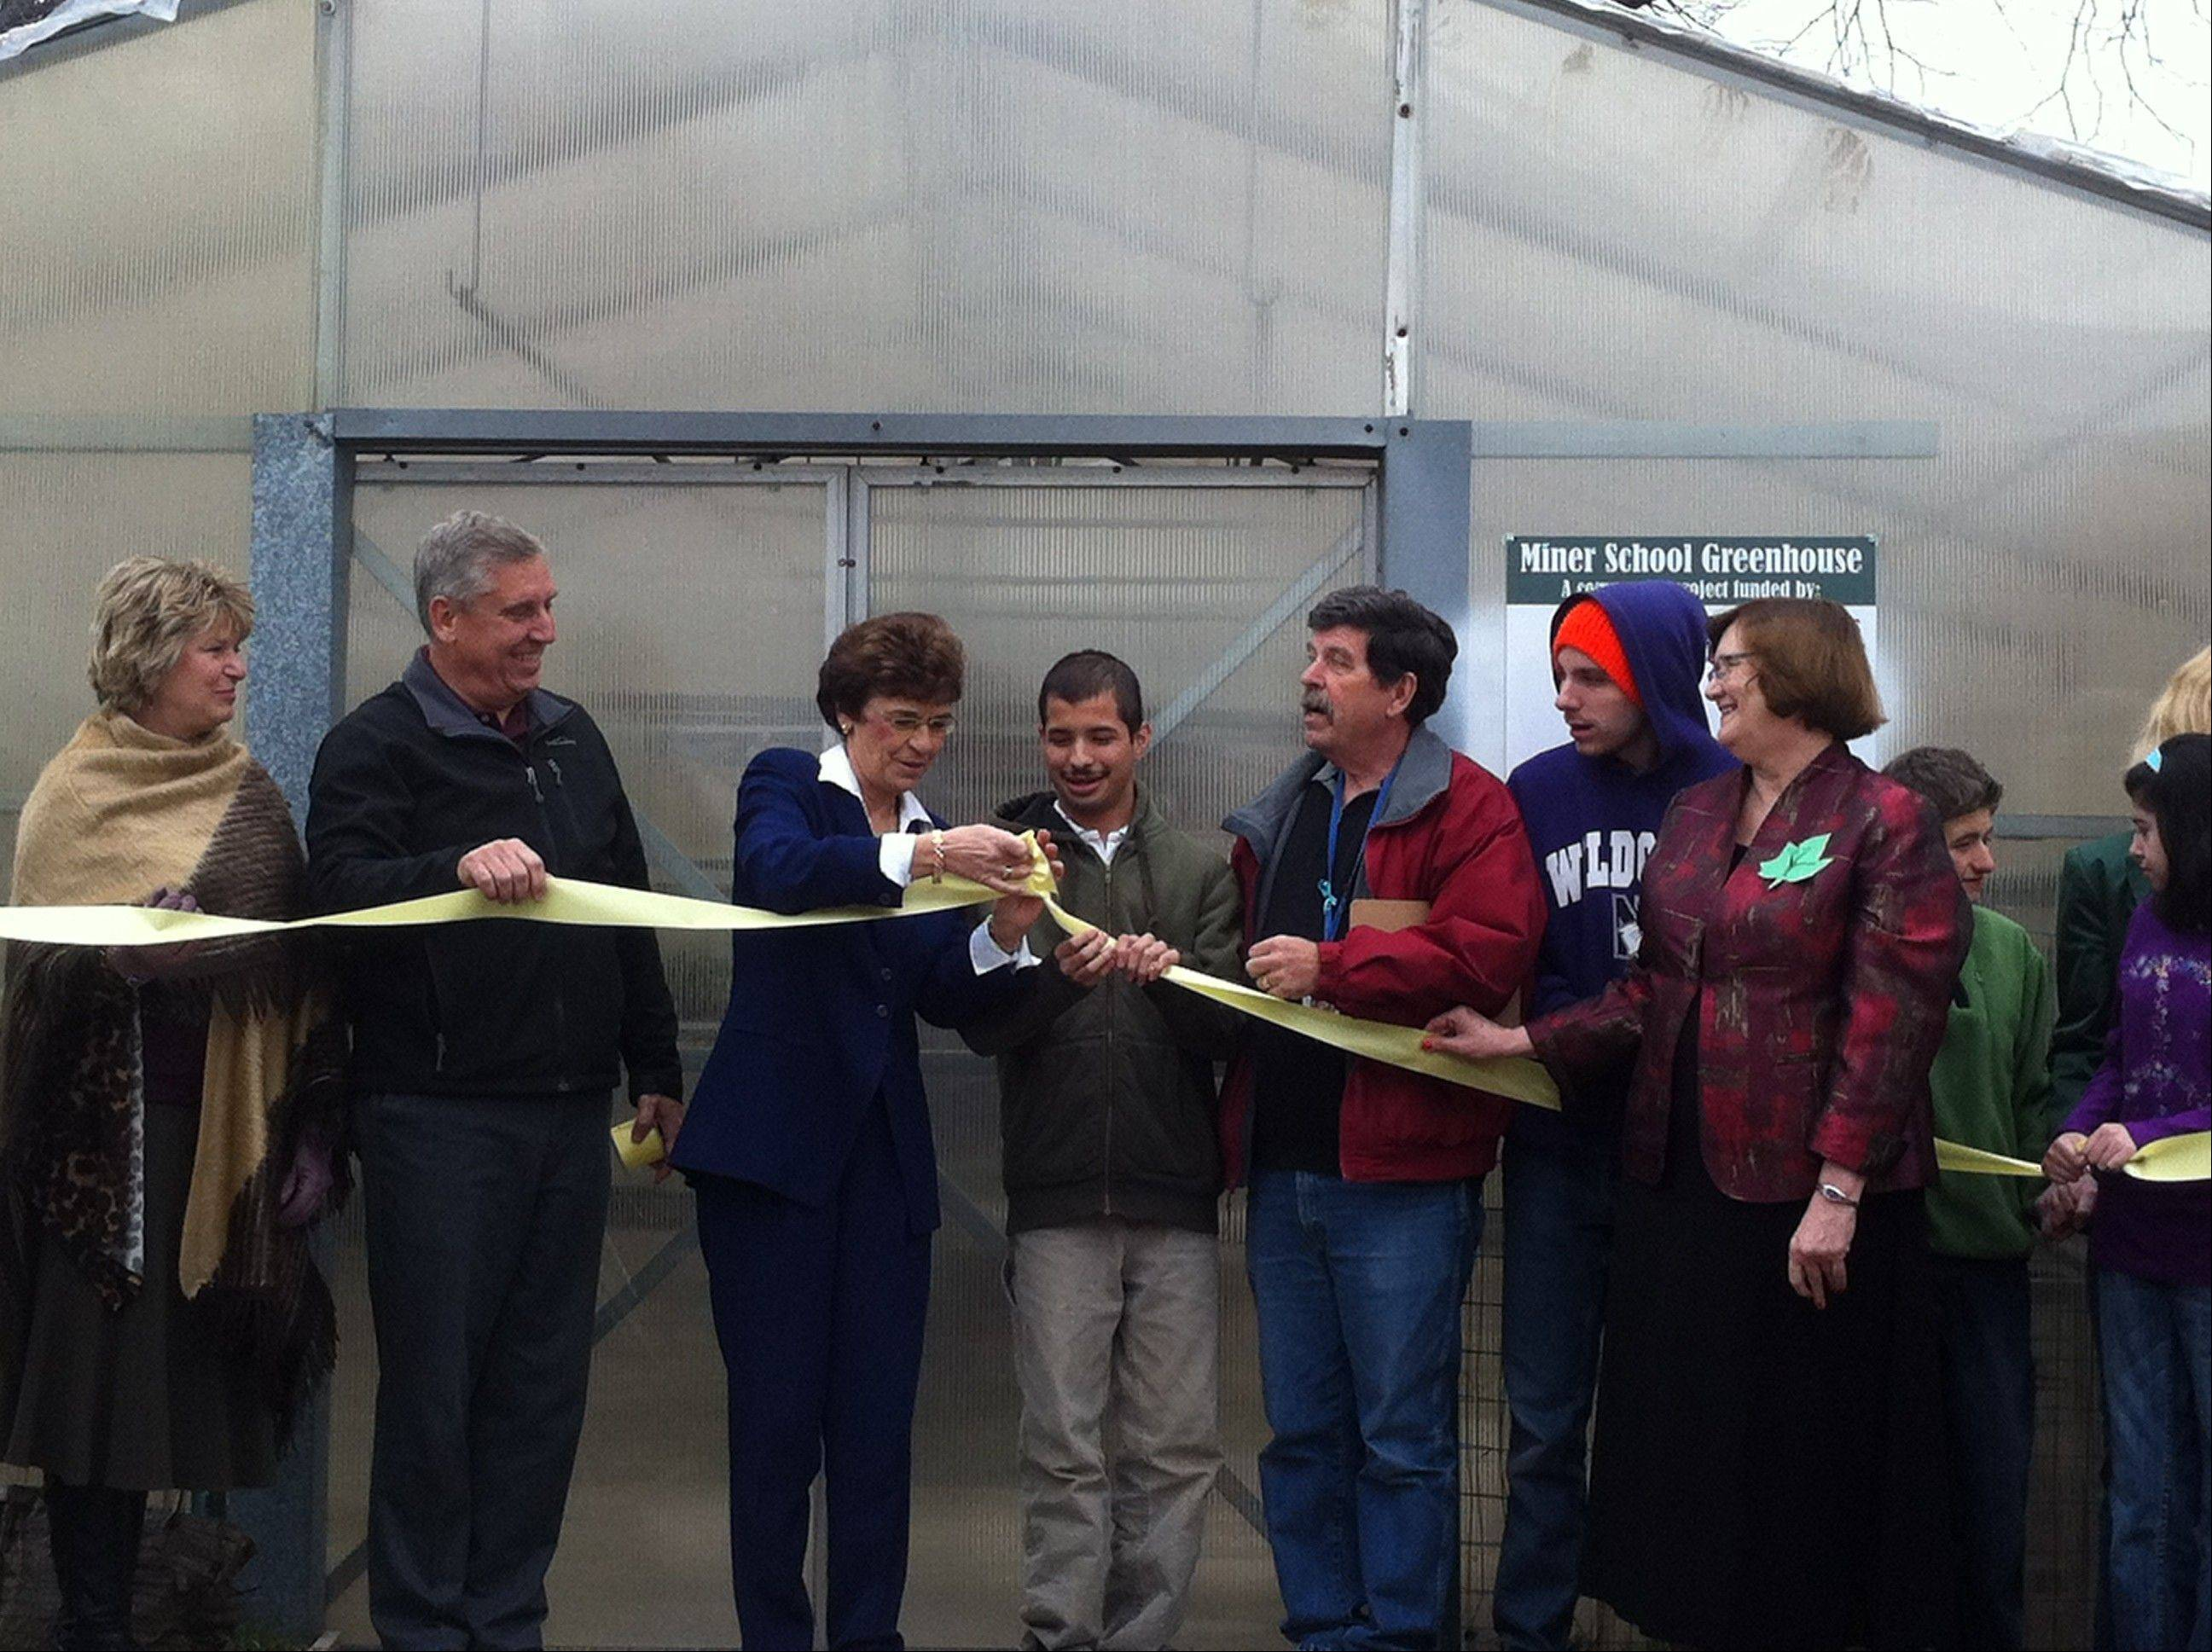 Arlington Heights Village President Arlene Mulder joins community members and students Tuesday in tying the ribbon, as opposed to cutting the ribbon, at the dedication for the Miner School Greenhouse.